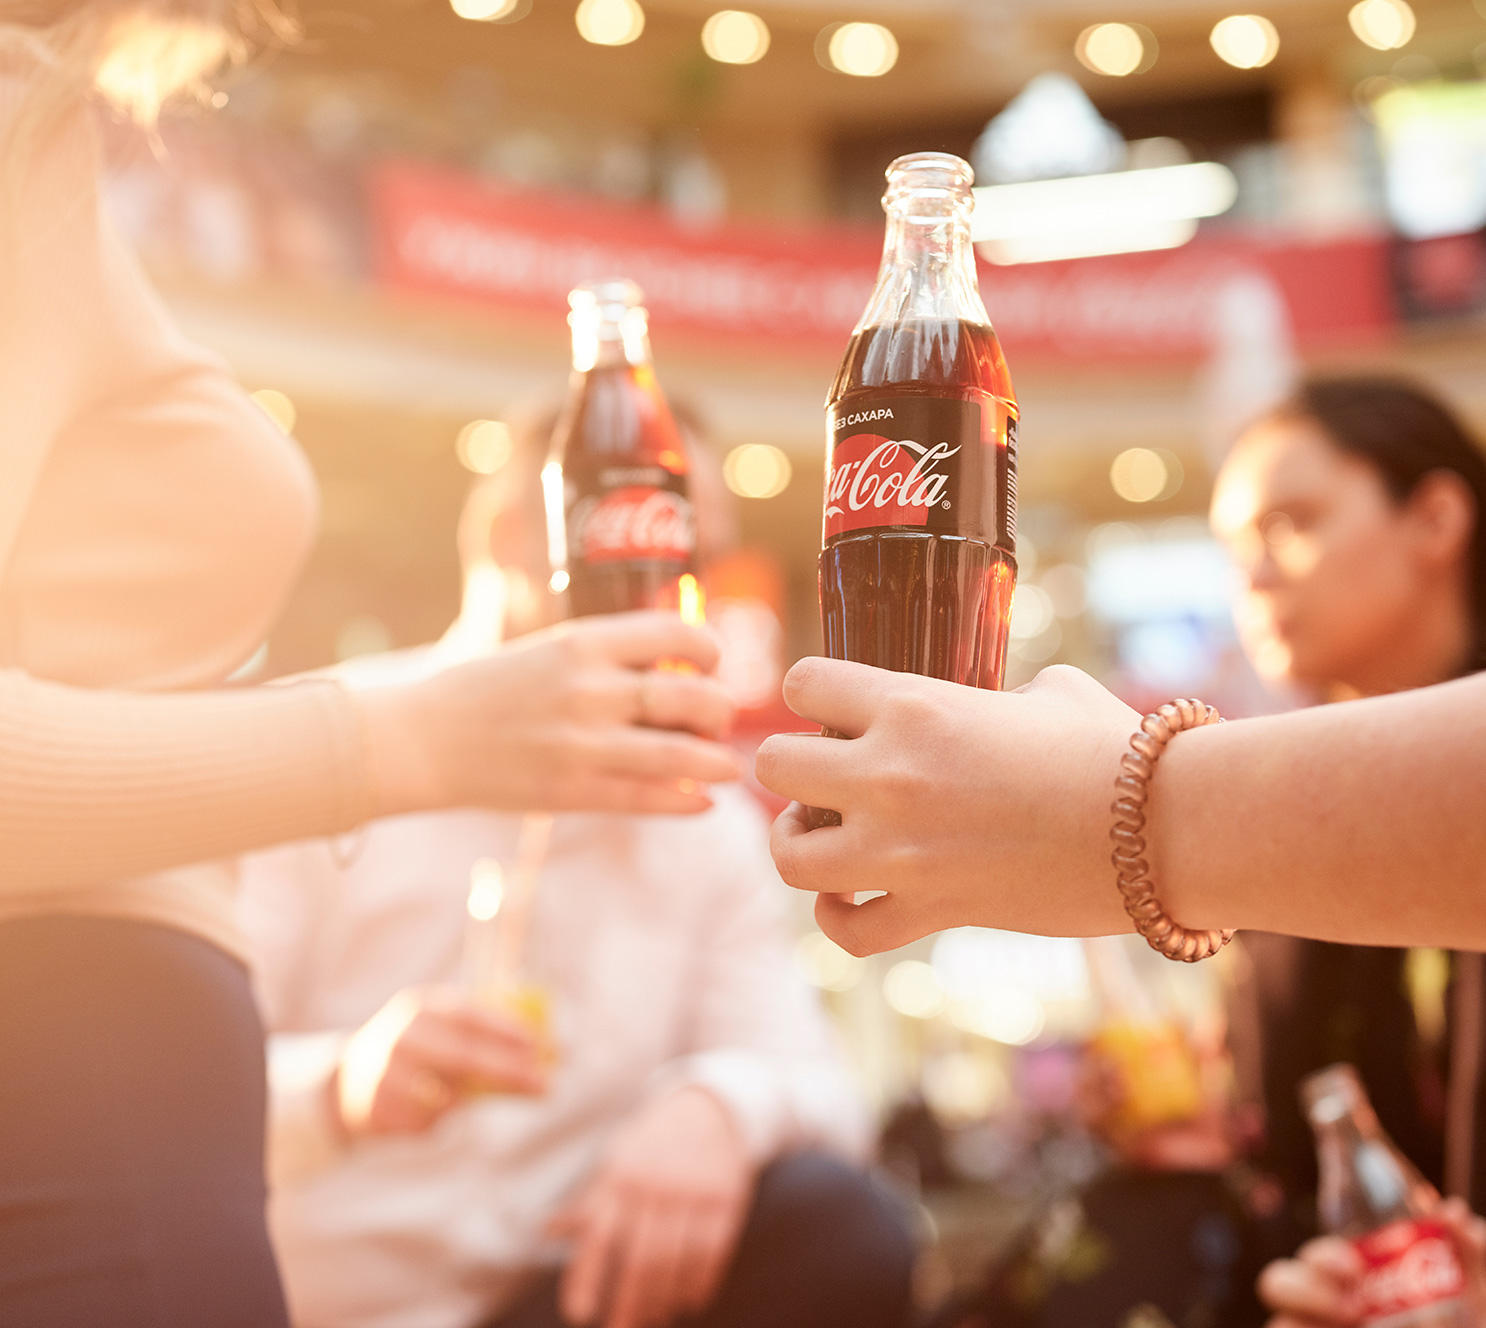 Coca-Cola Reports Third Quarter 2020 Results, Provides Update on Strategic Actions to Emerge Stronger from the Pandemic